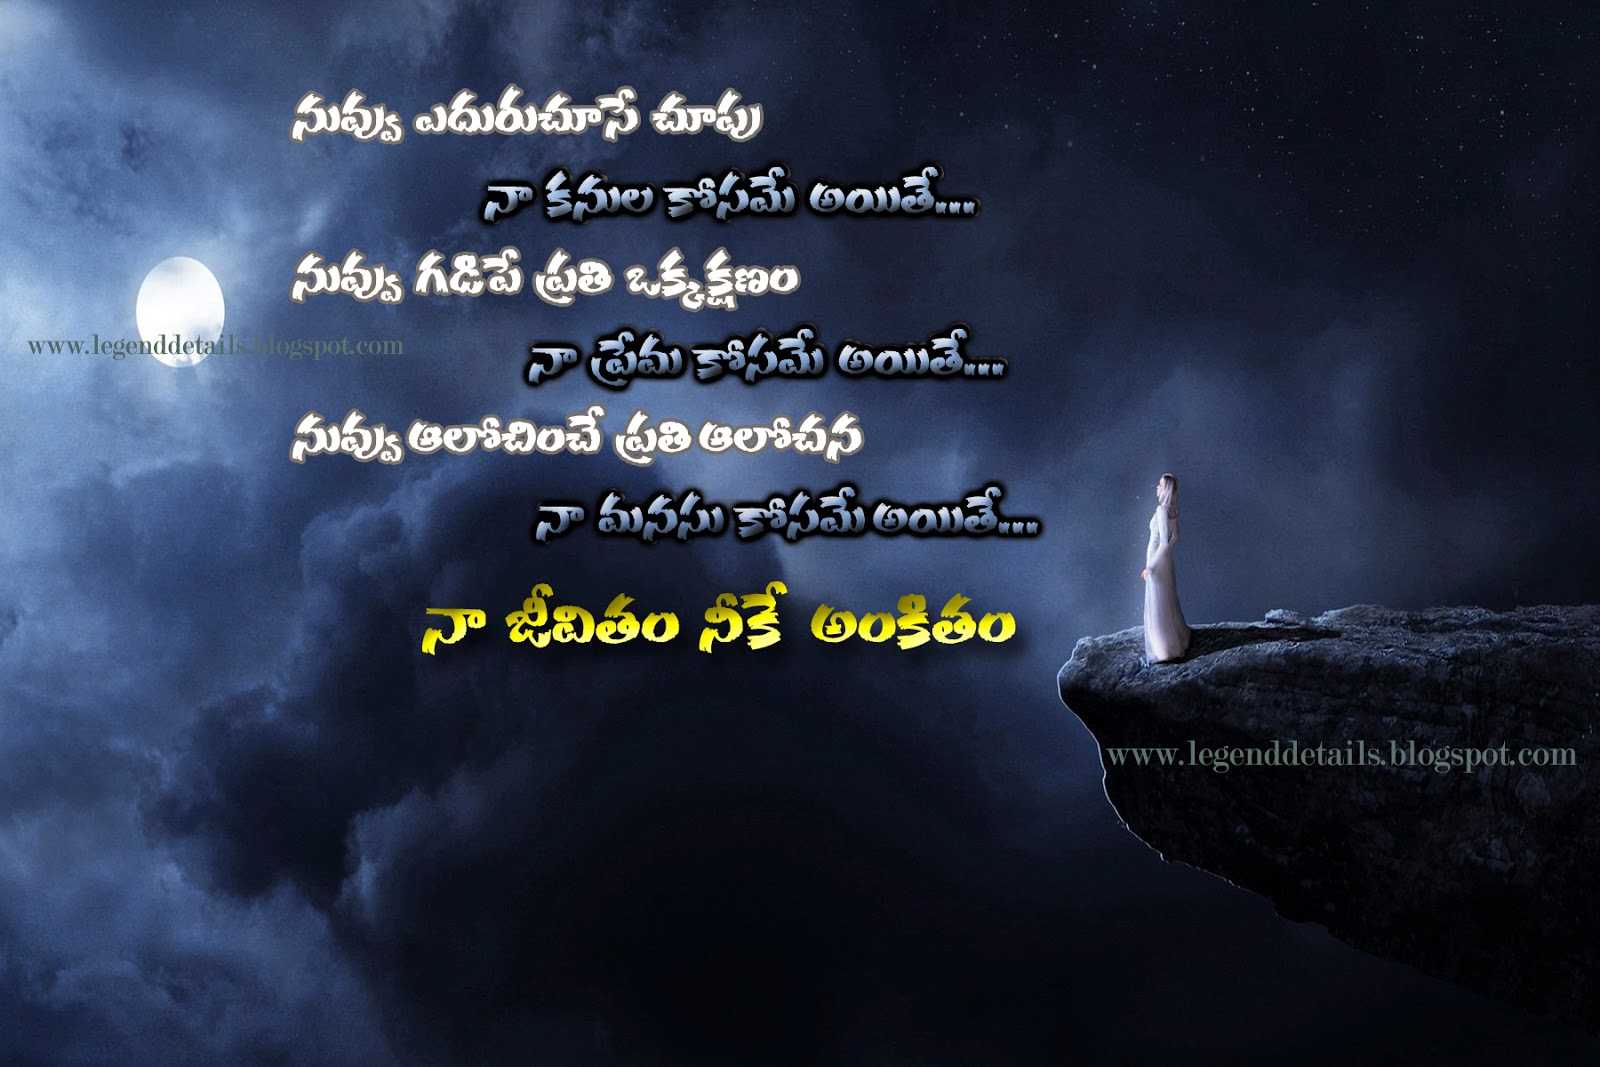 ... love quotes in telugu with image you only need one man to love